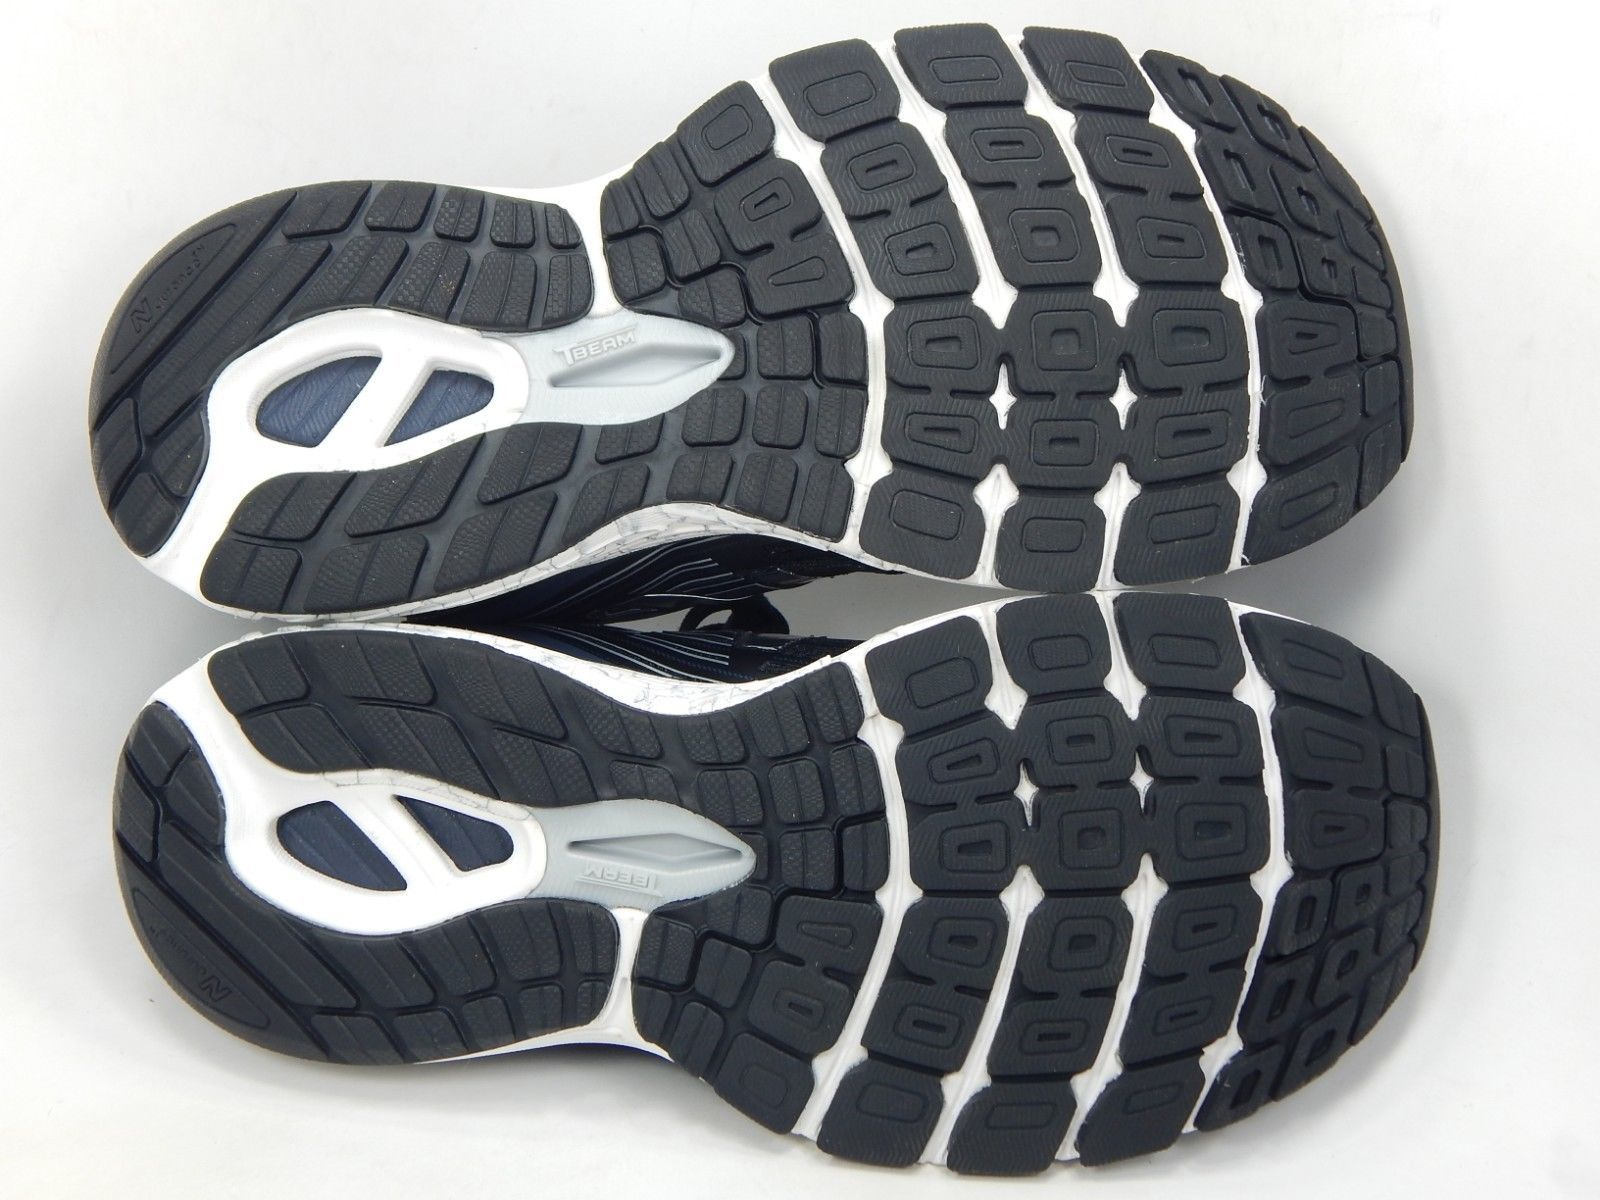 Gemeric Replacement Insoles For New Balance Shoes